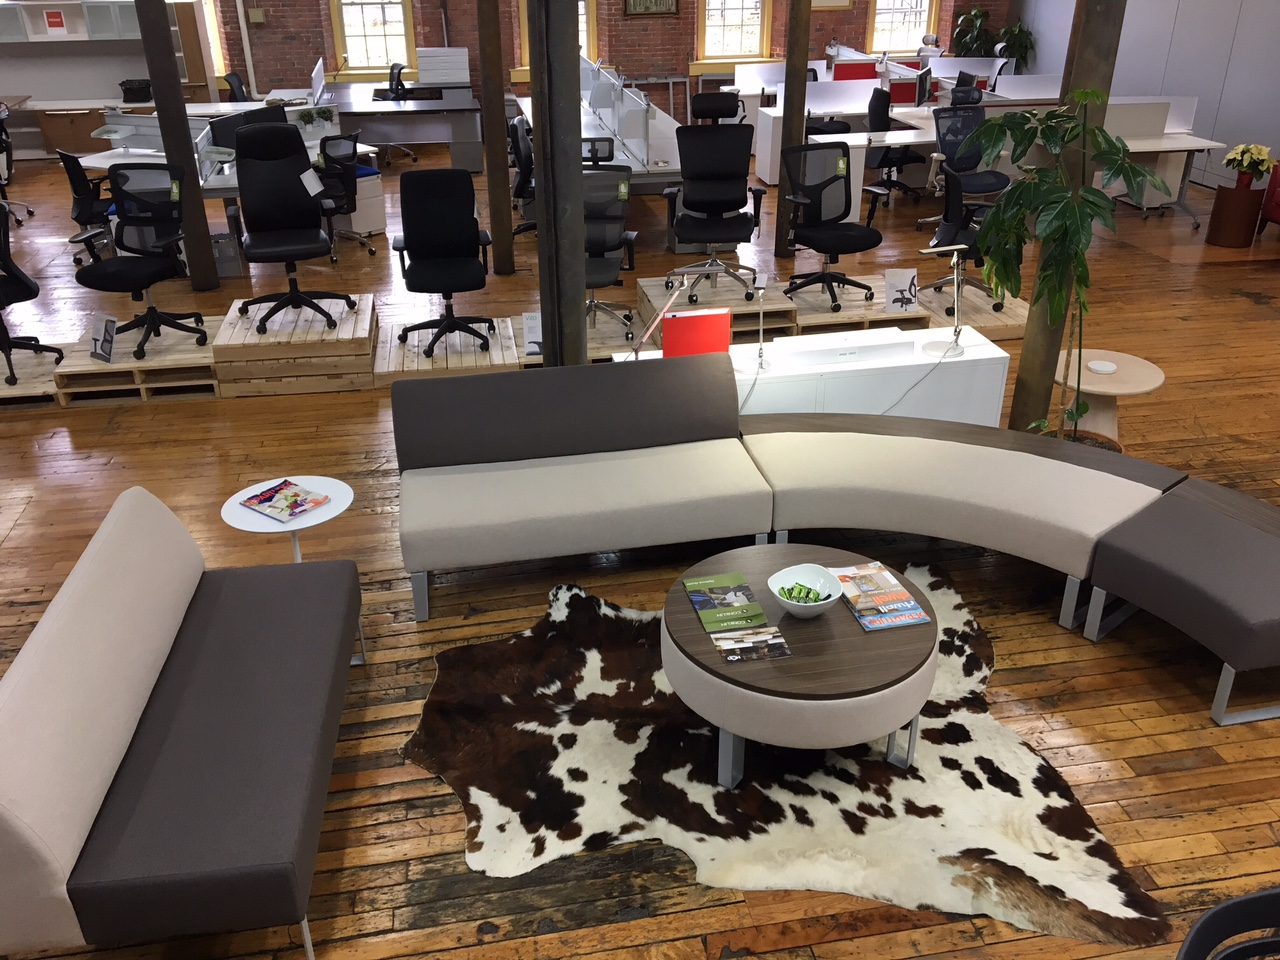 Conklin Office Furniture Locations - NY, IN, MA, NJ Used ...